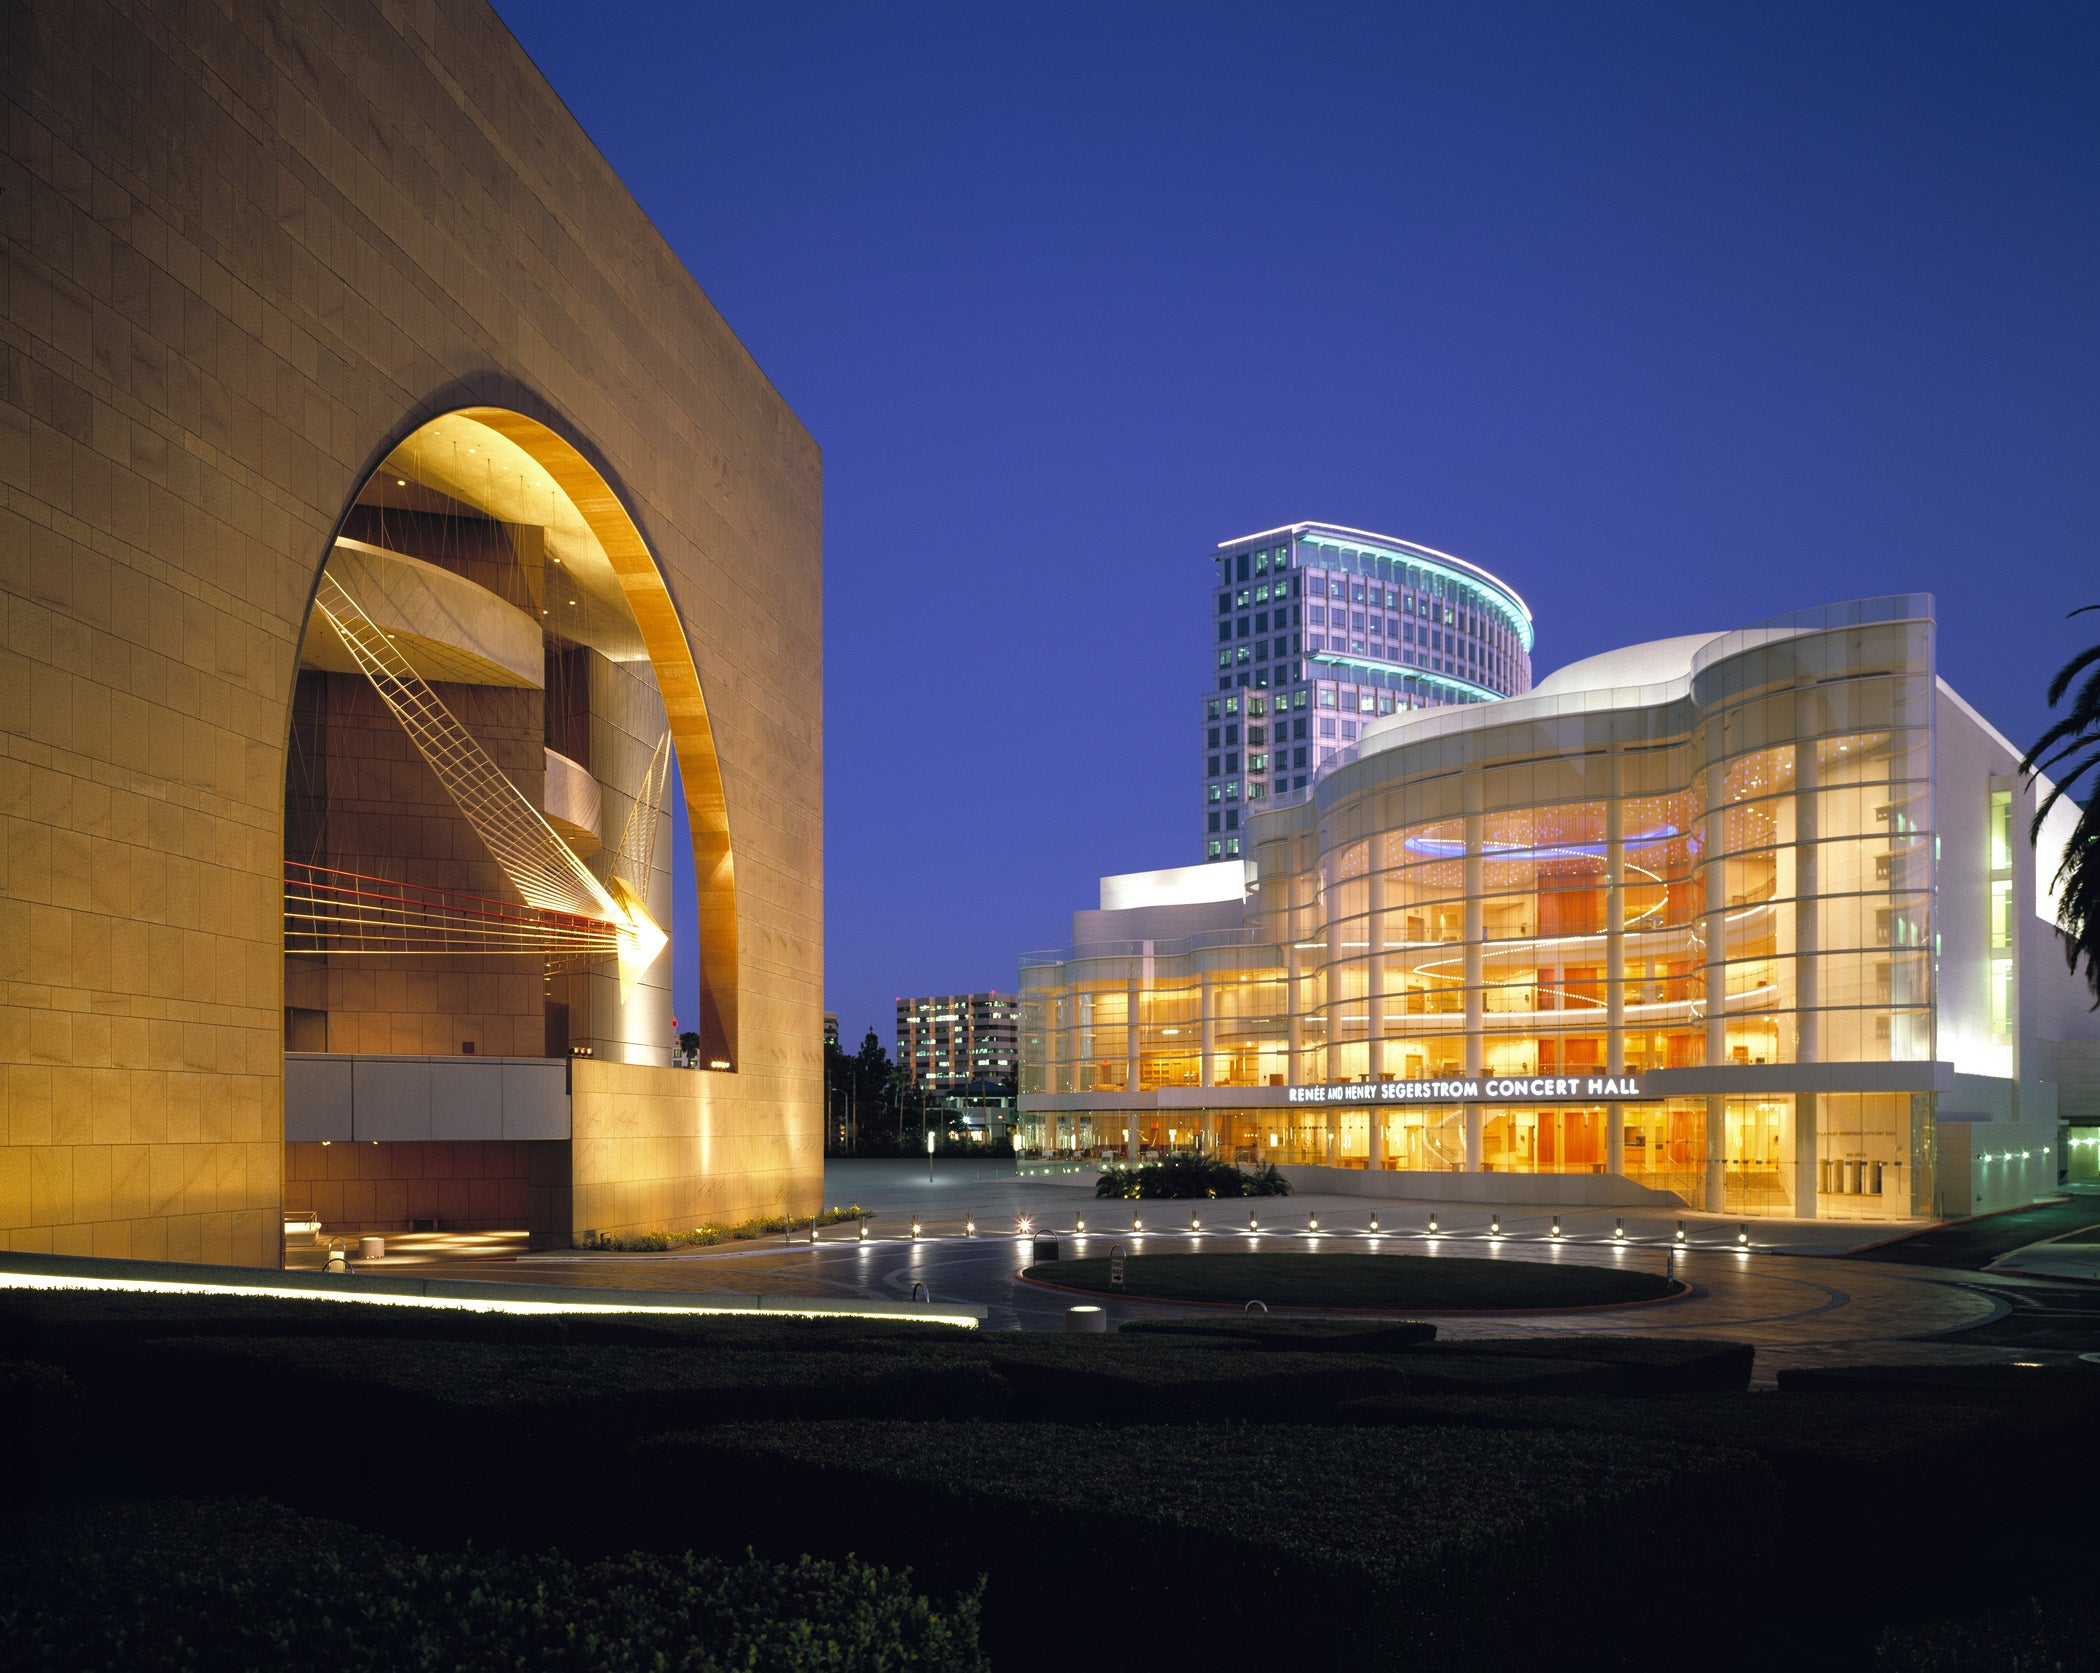 The Orange County Performing Arts Center (OCPAC), site of Colaboration